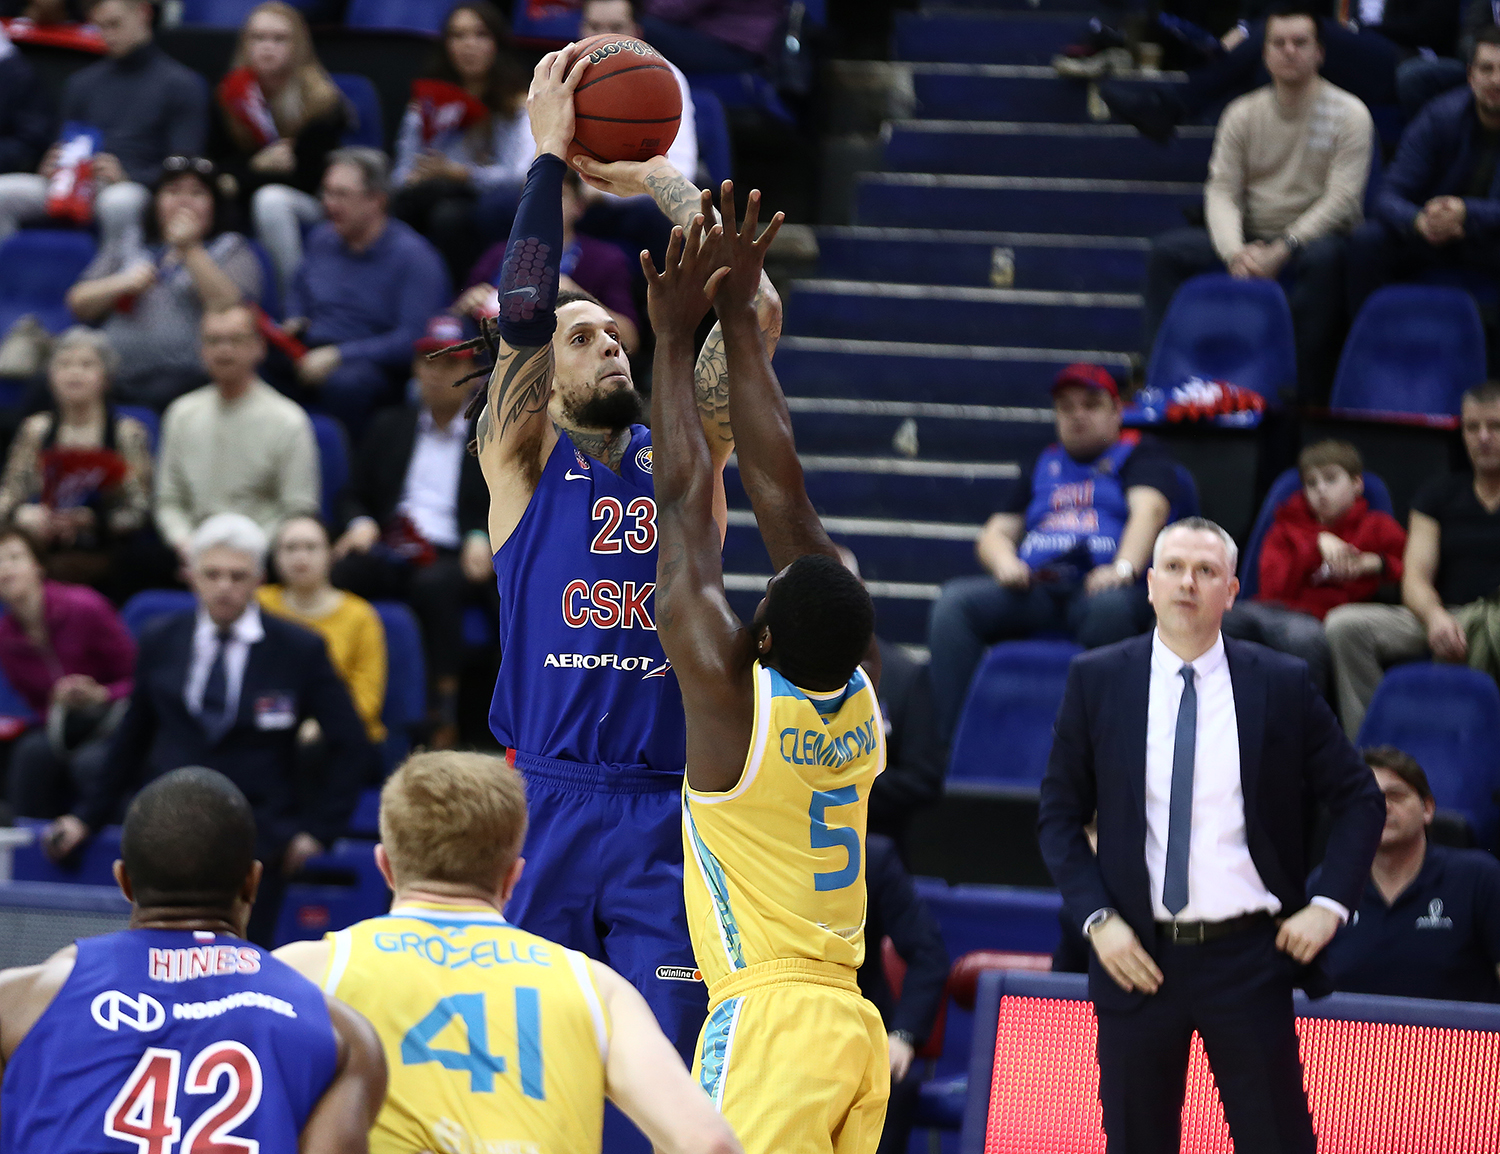 CSKA Thrashes Astana In Regular-Season Finale